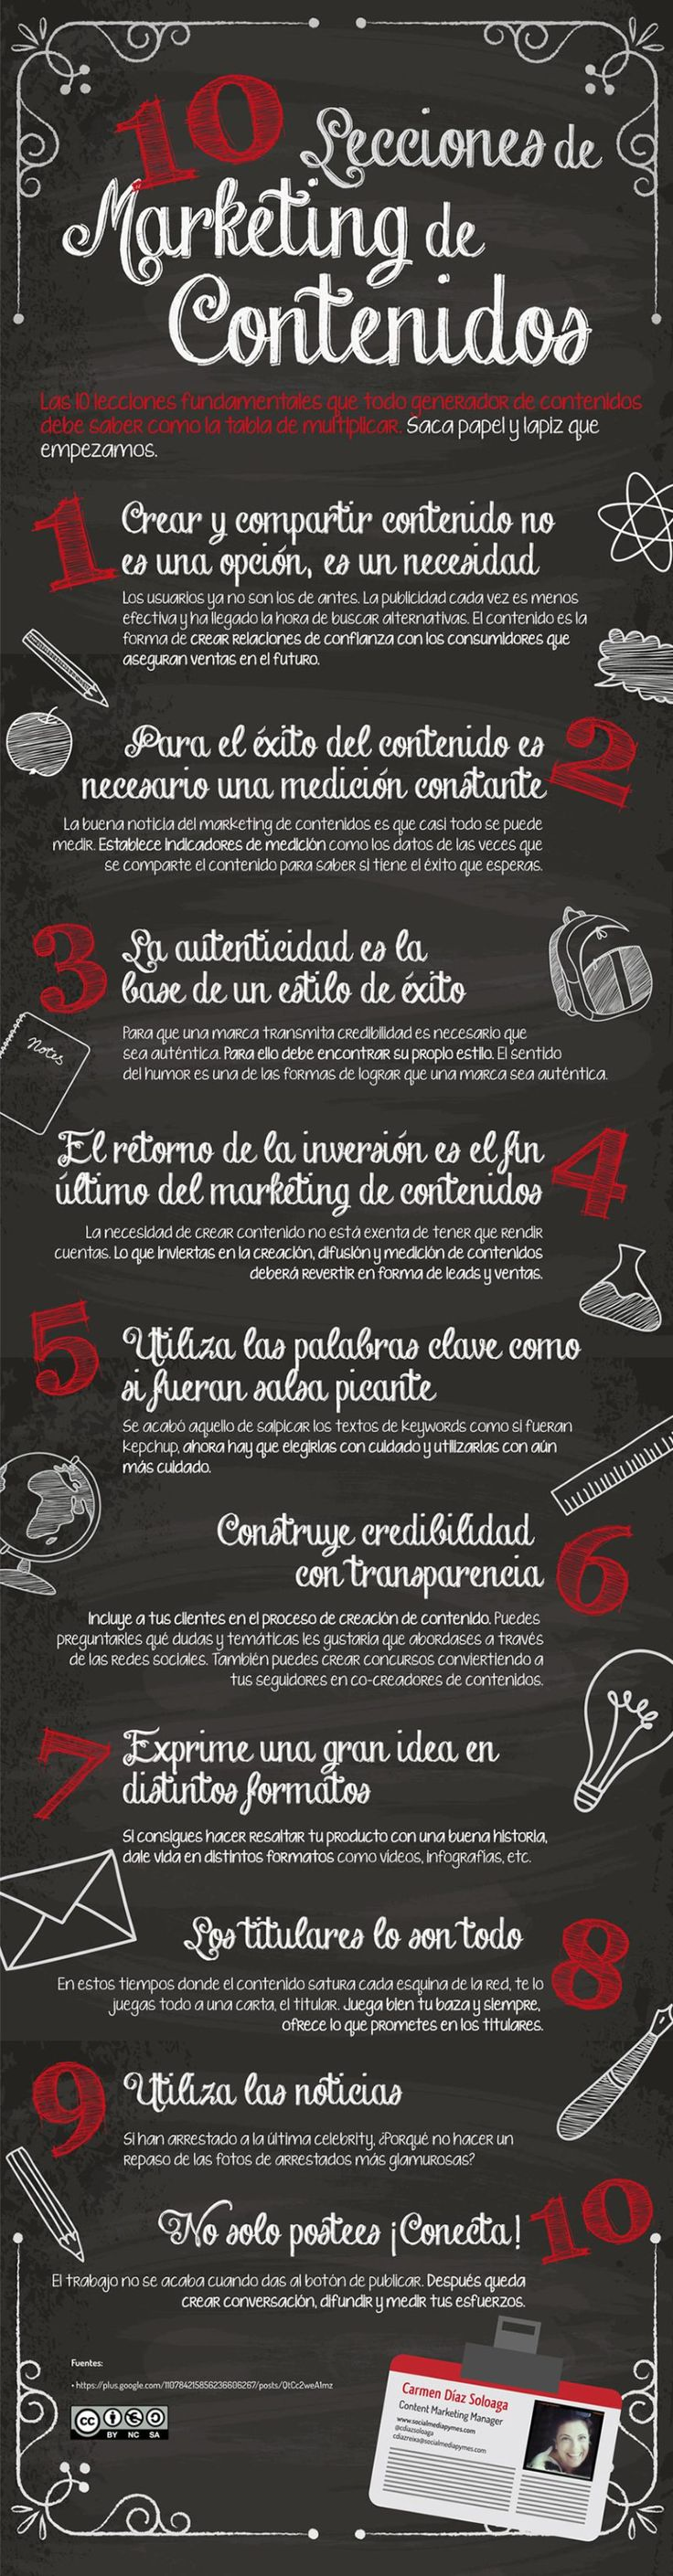 10 LECCIONES DE MARKETING DE CONTENIDOS #MARKETING #SOCIALMEDIA